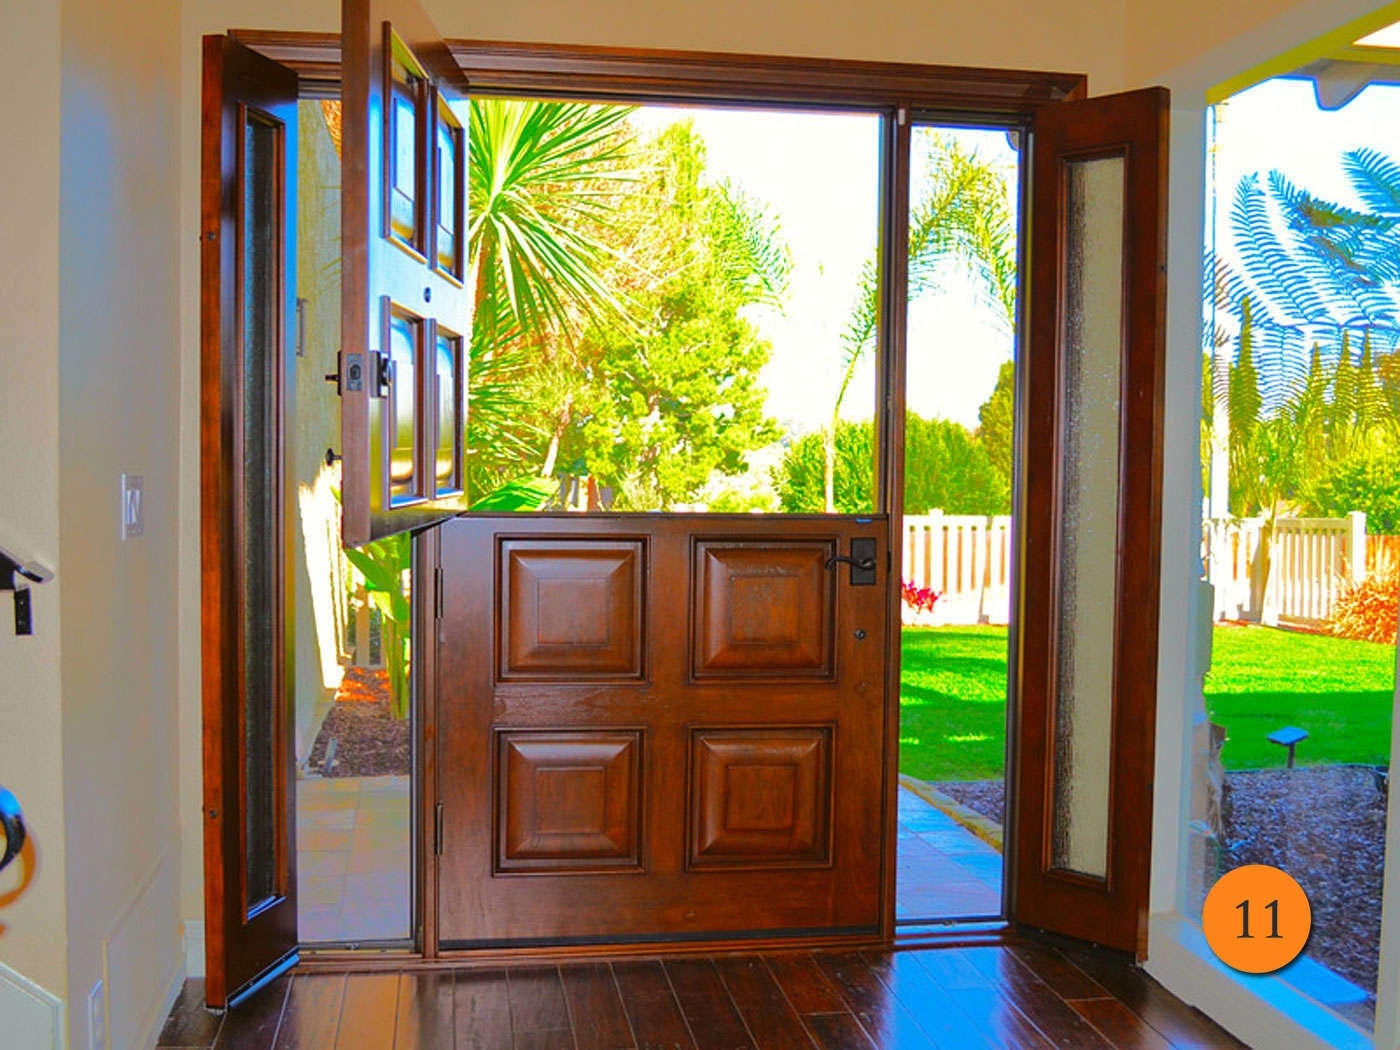 Picture of: Front Door With Sidelights That Open